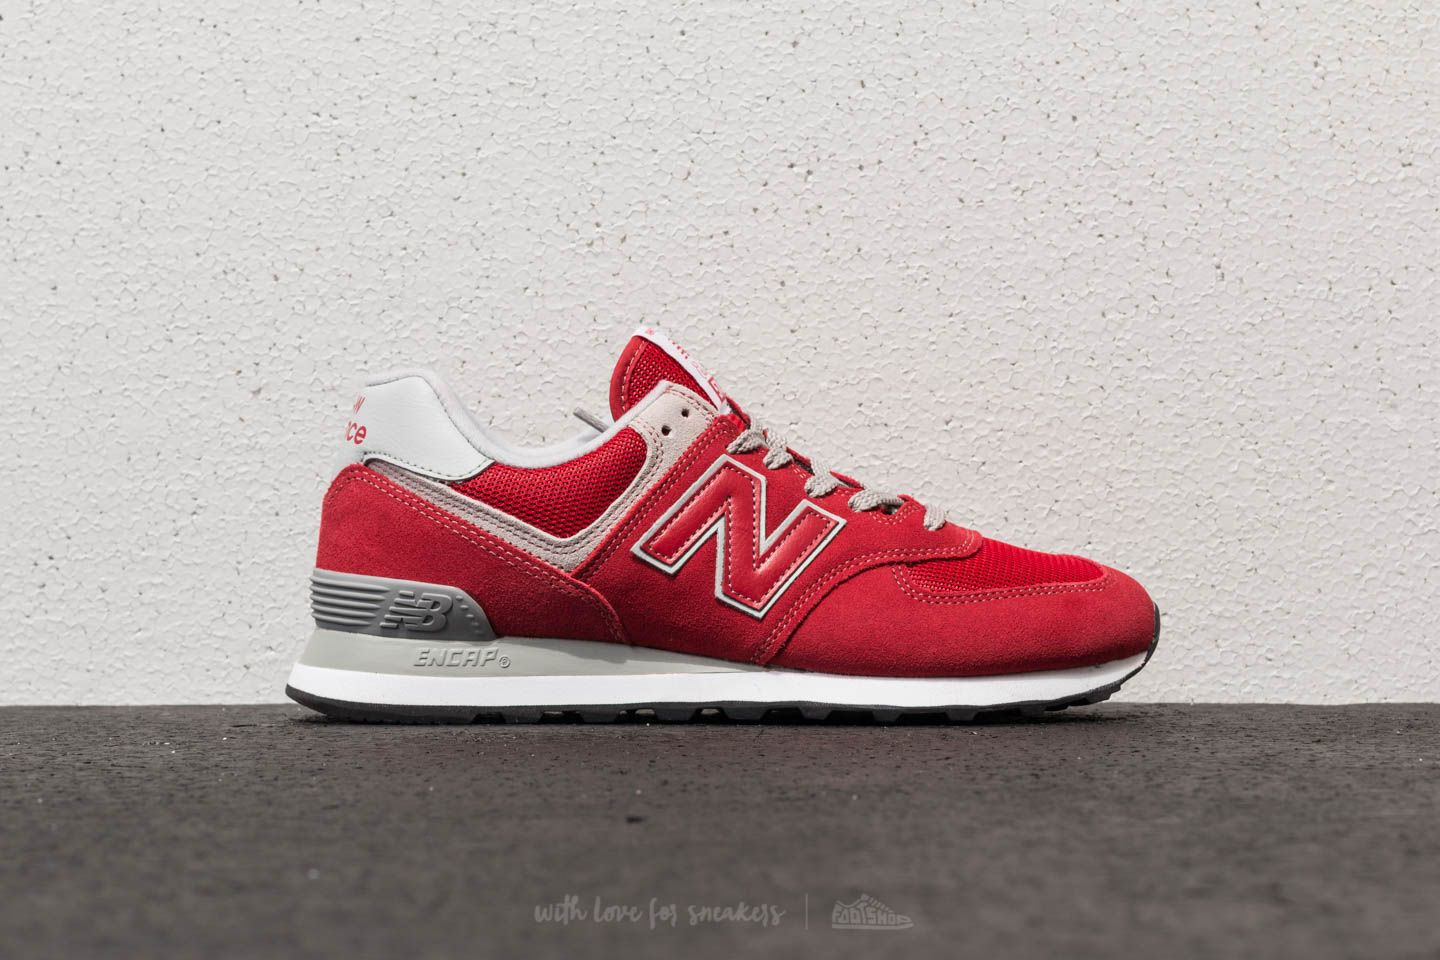 reputable site 4d4b9 d8cd0 New Balance 574 Team Red   Footshop